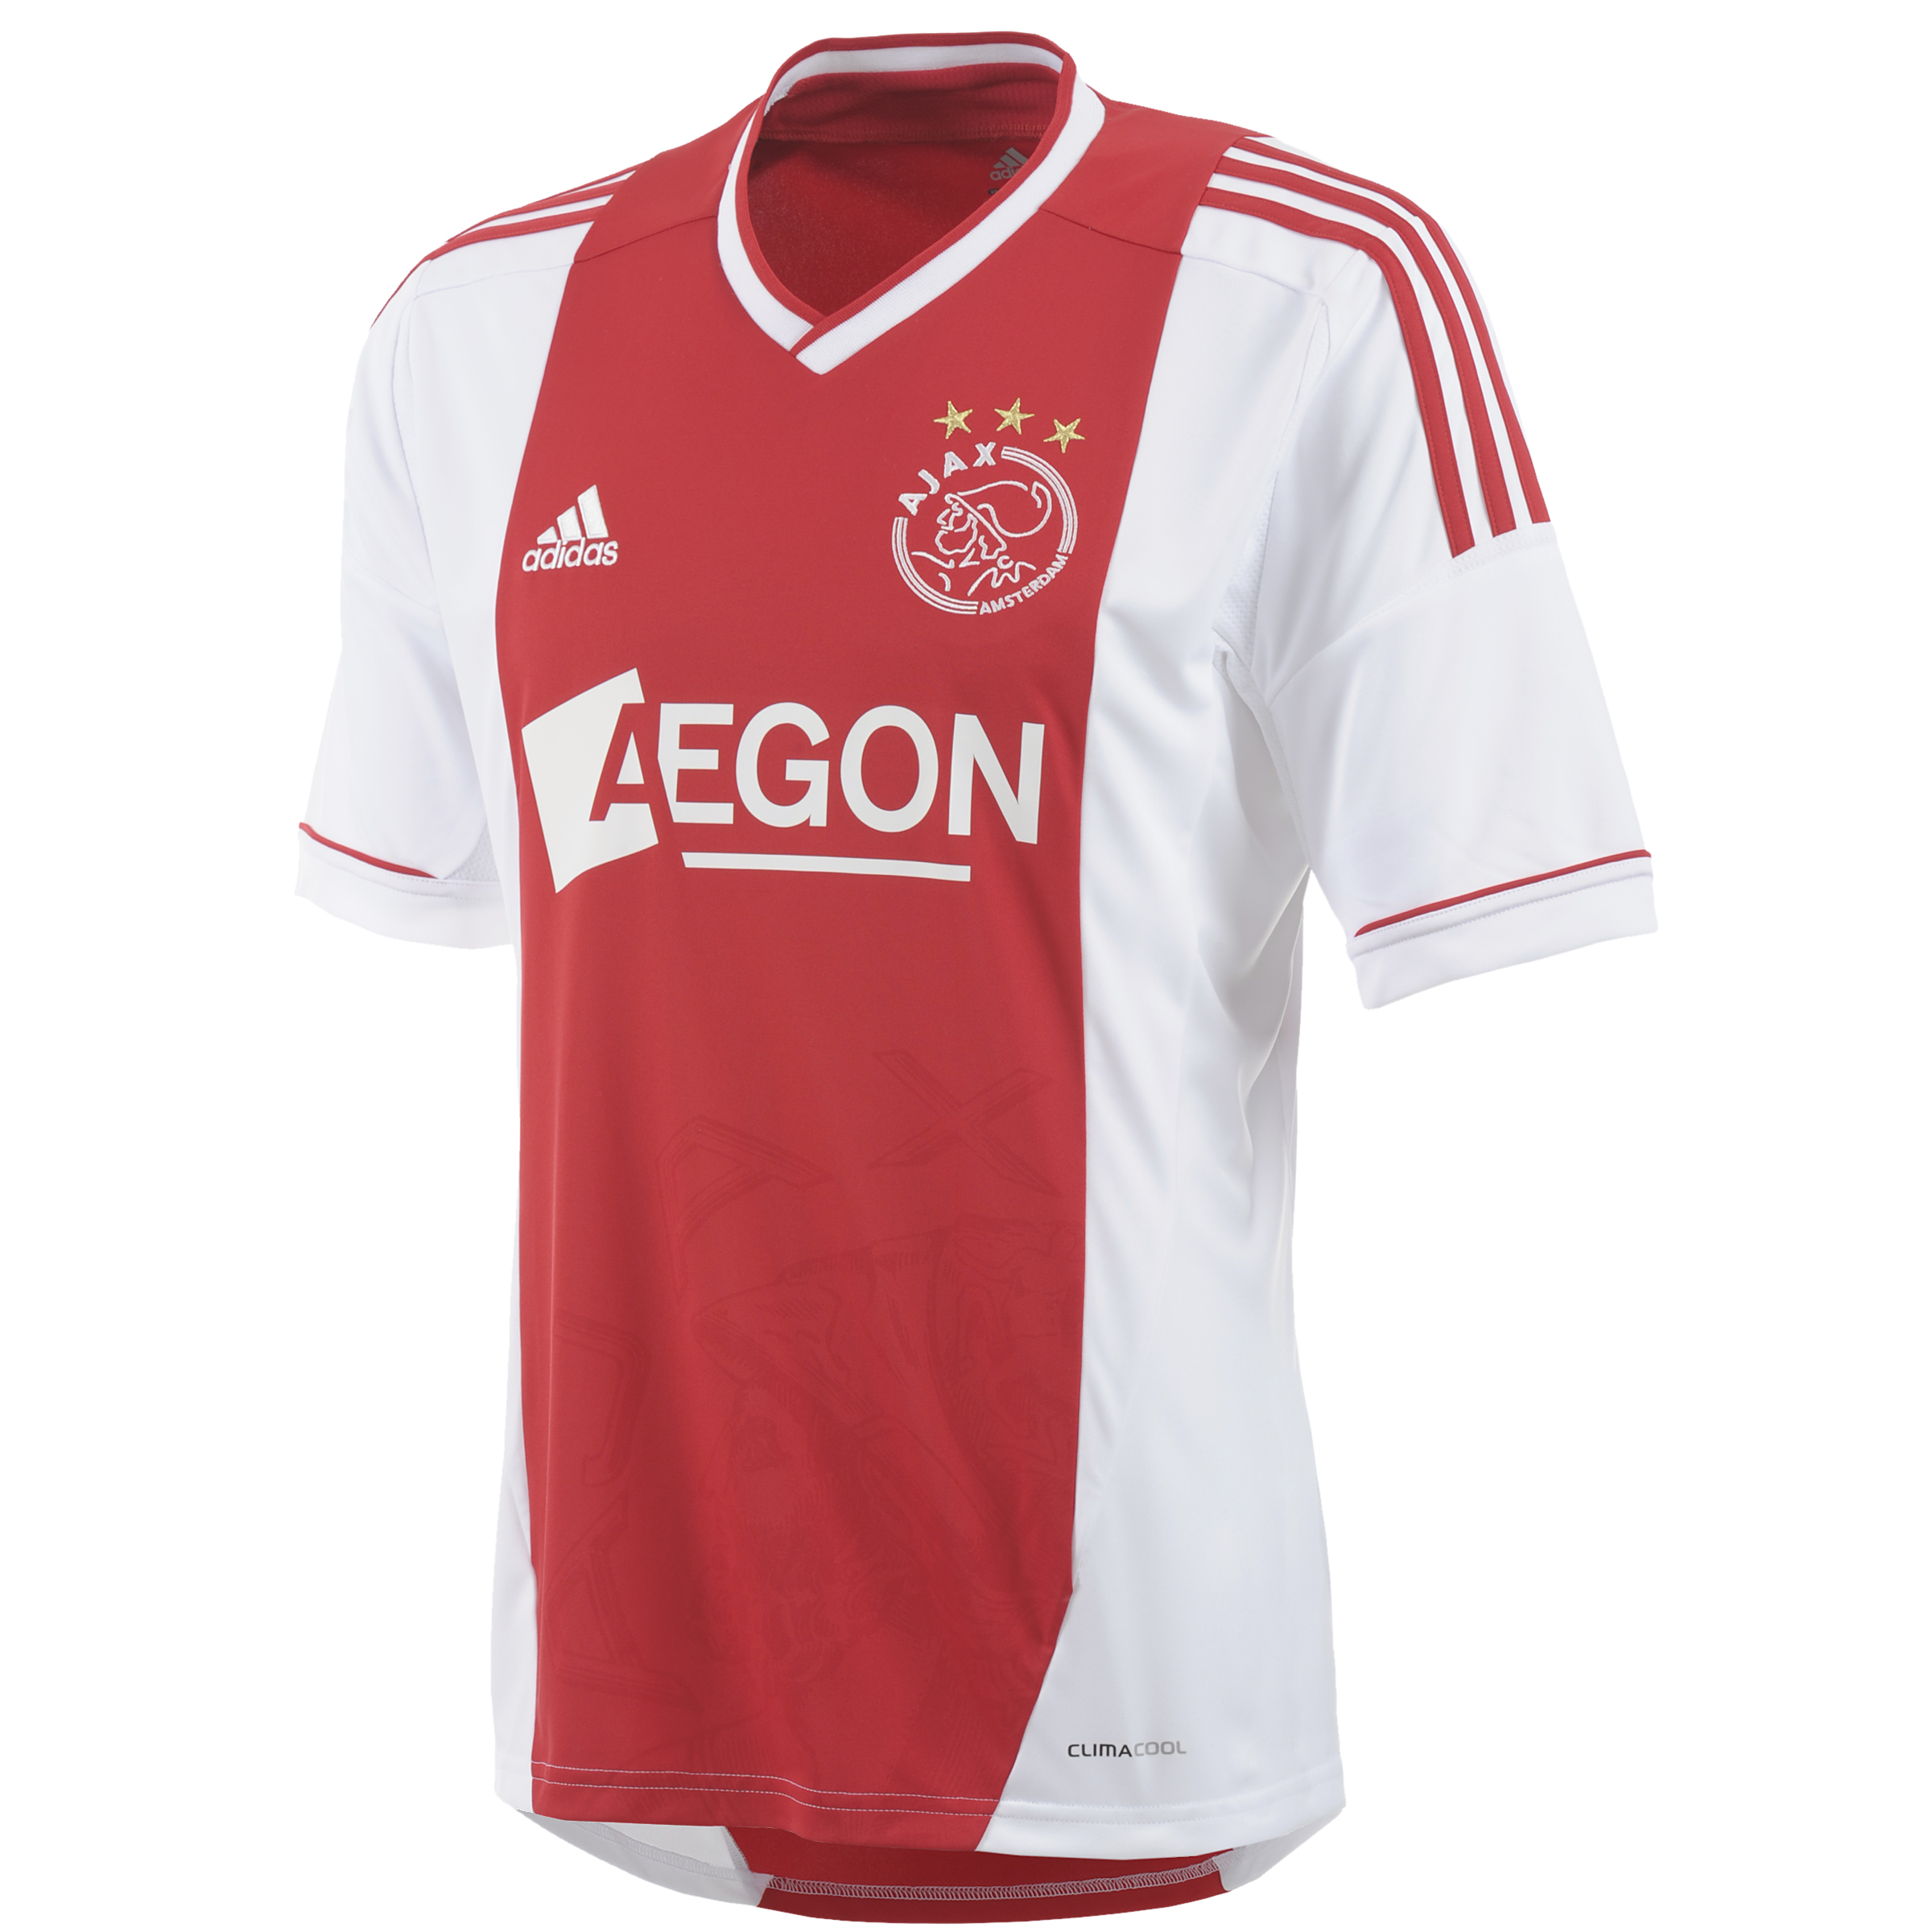 Ajax Home Shirt 2012/13 - Toro/White - Youths